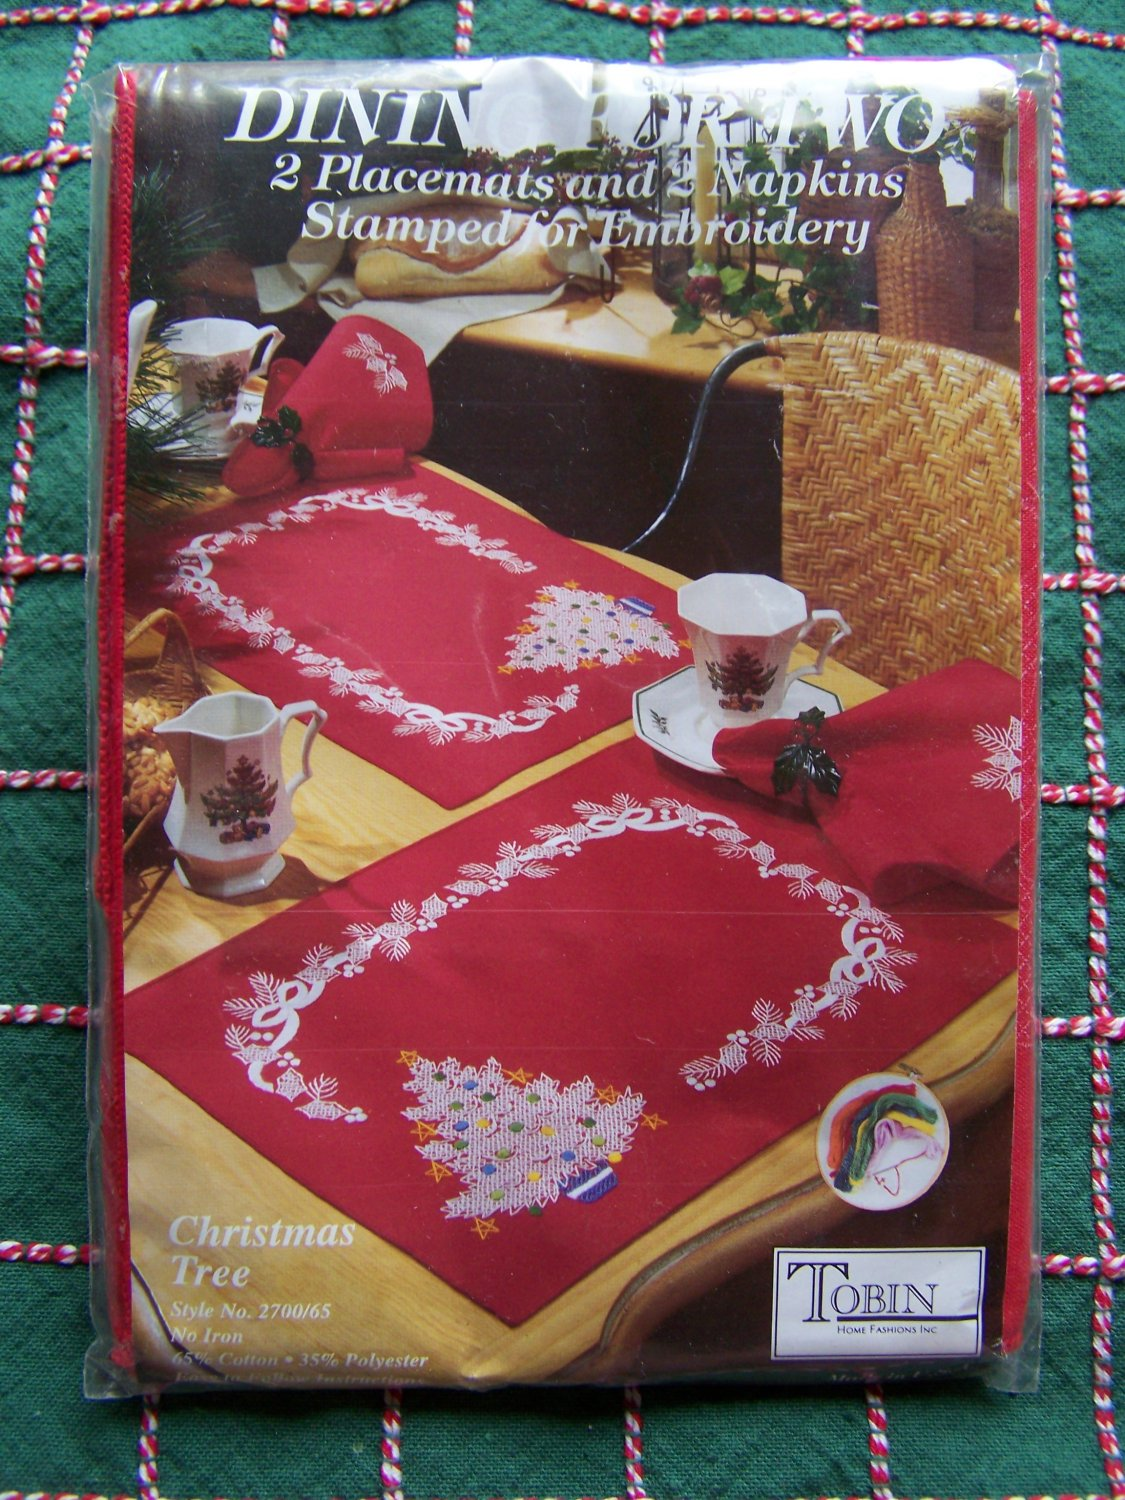 New Tobin Stamped Embroidery Christmas Tree 2 Placemats 2 Napkins Table Settings